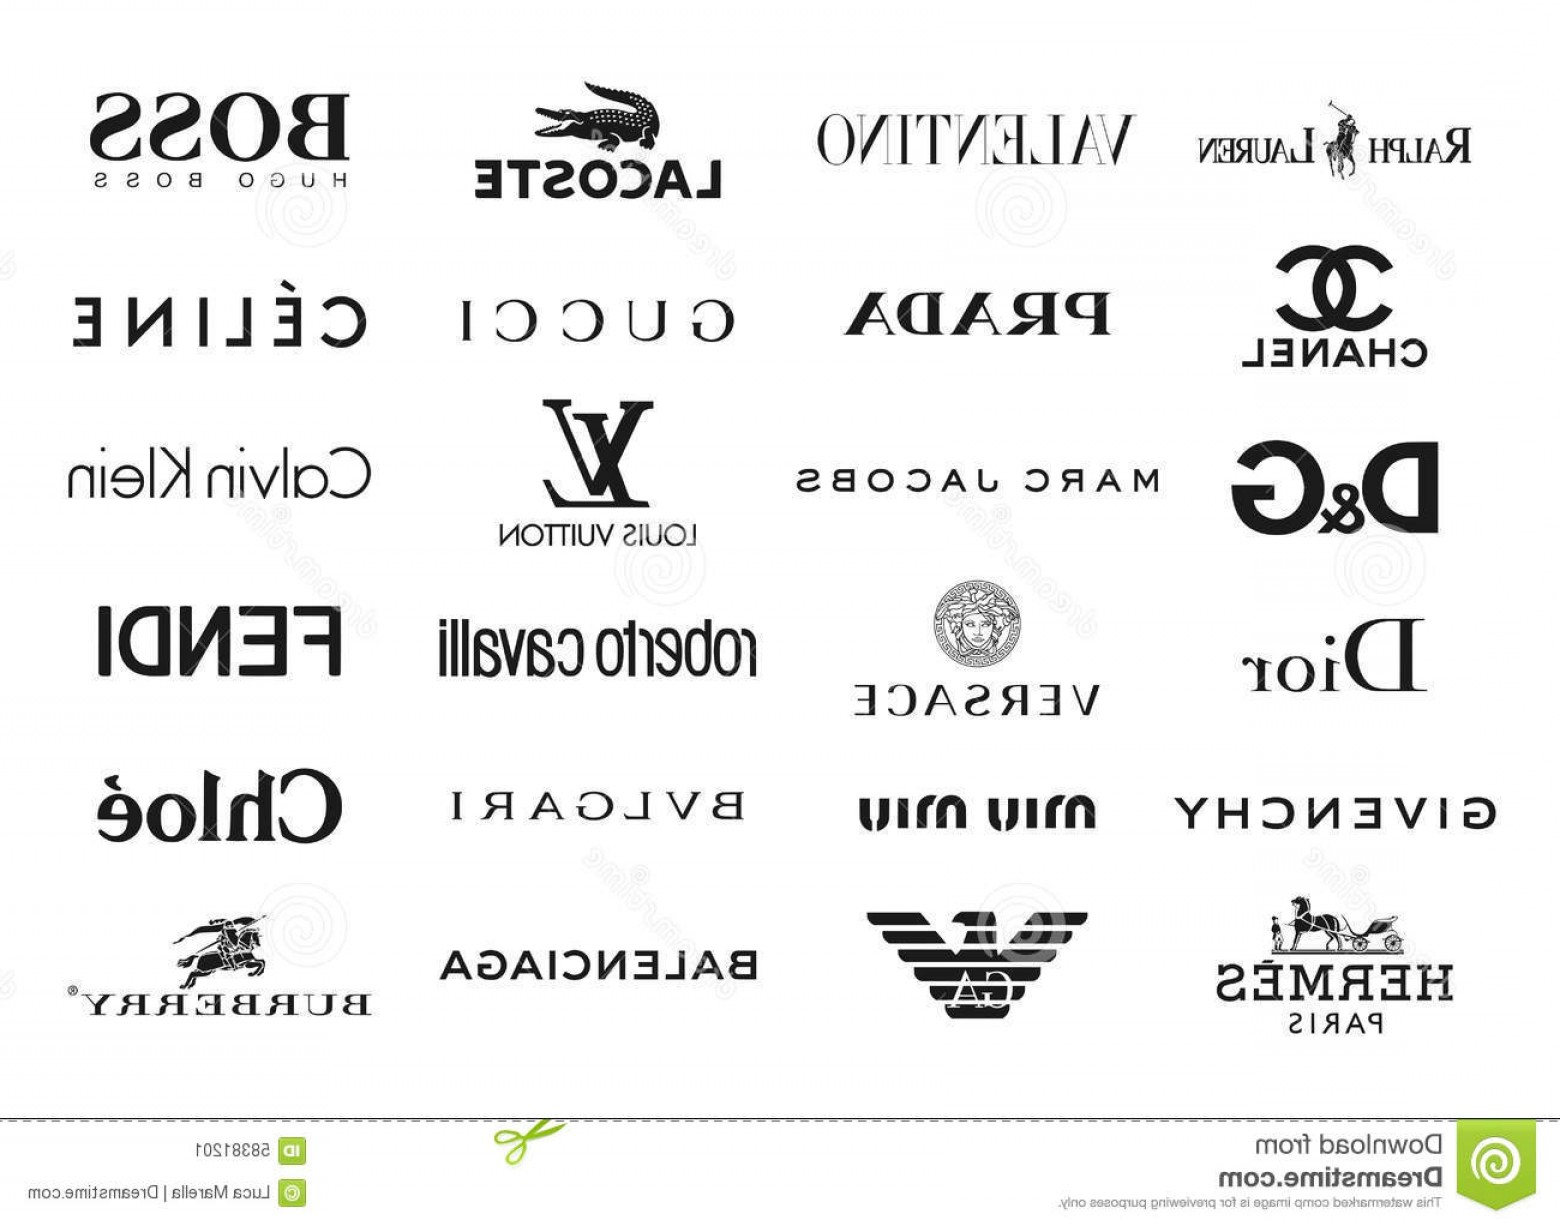 The World Vector Logos Of Brands: Editorial Photo Fashion Brands Logos Vector Collection Most Famous World Eps File Available Image